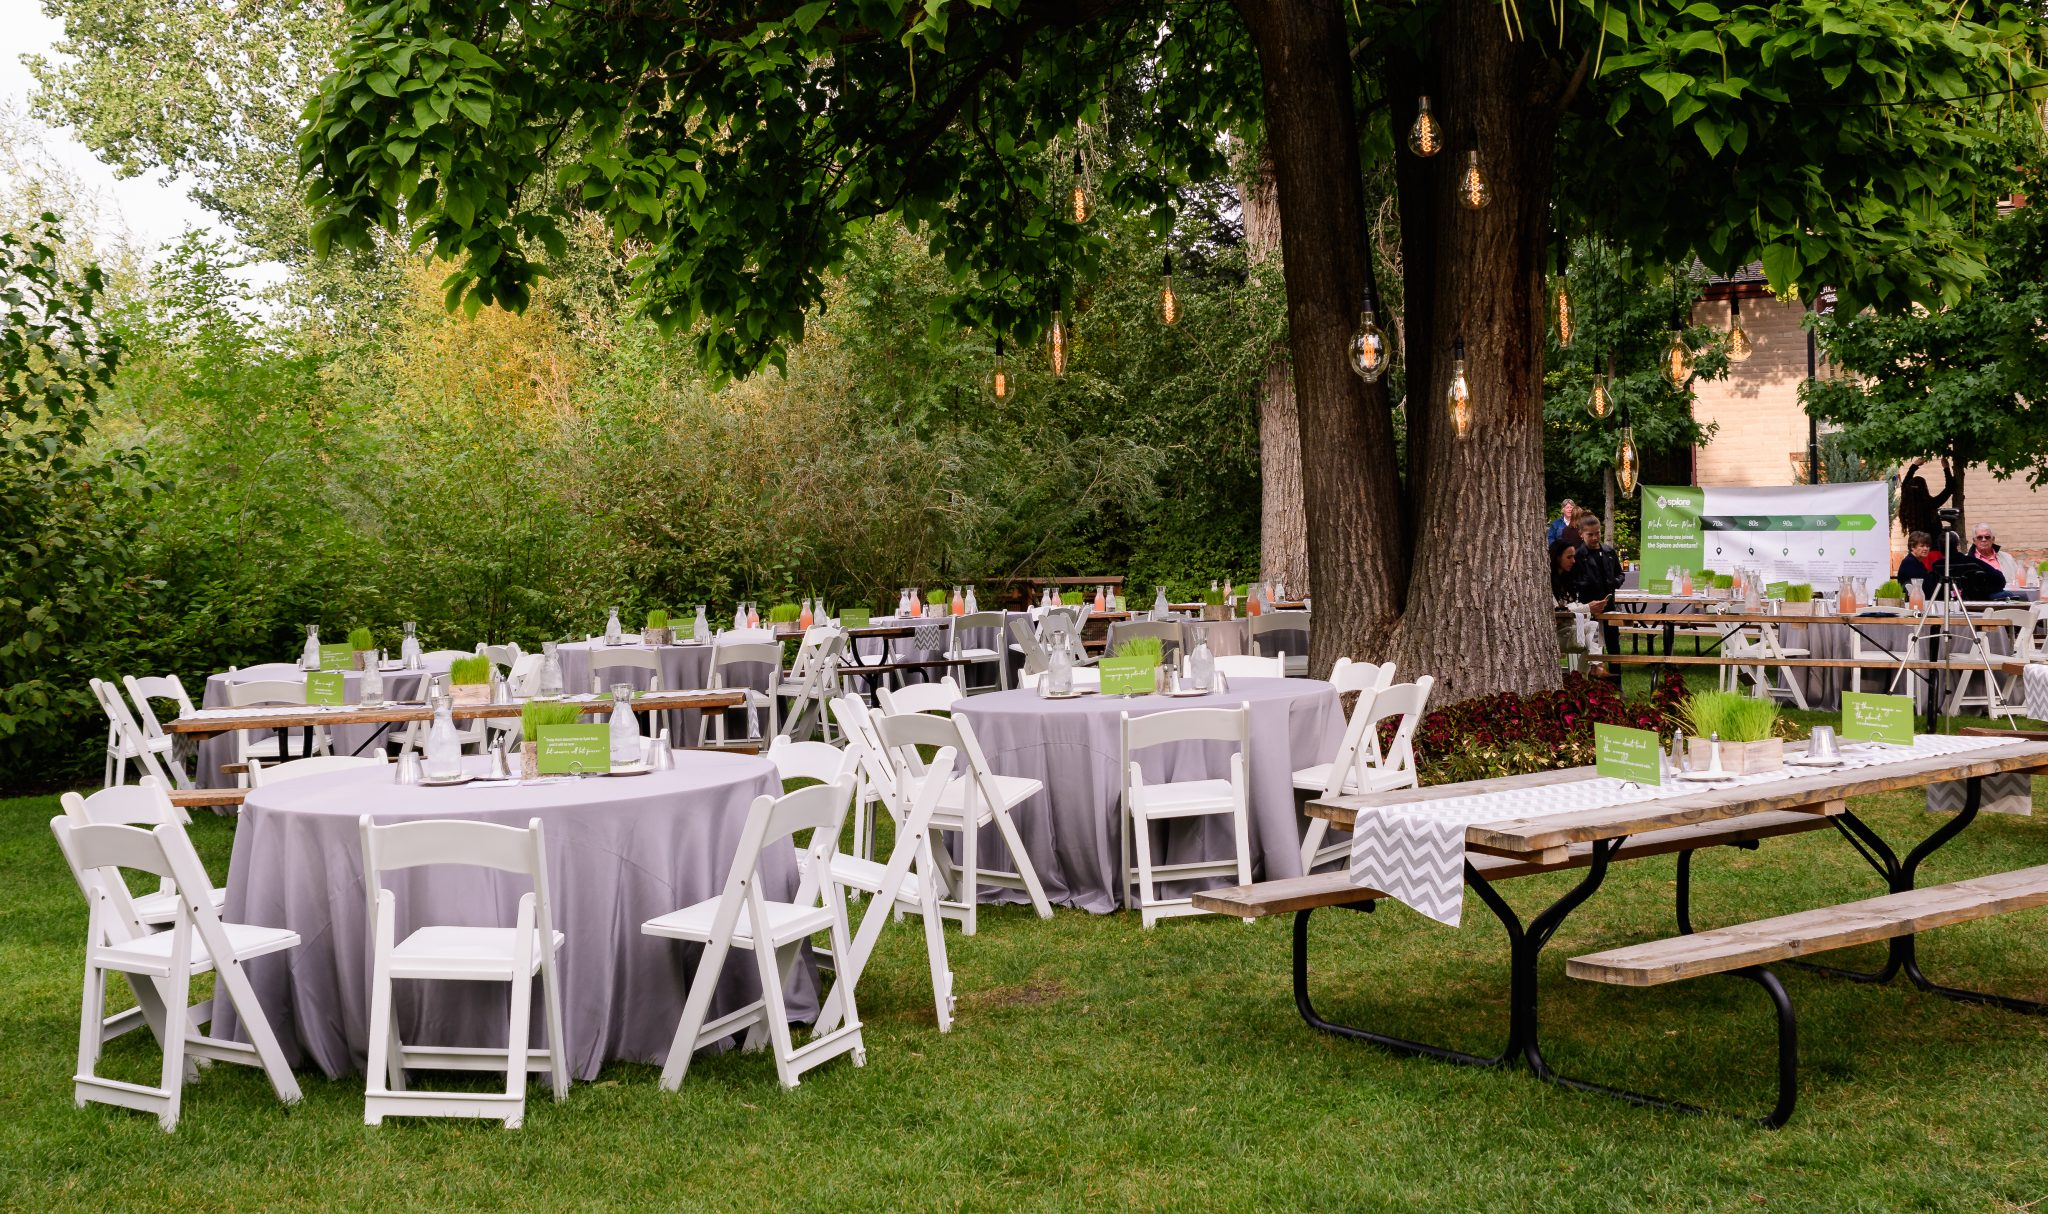 Utah event rental tents, tables and chairs